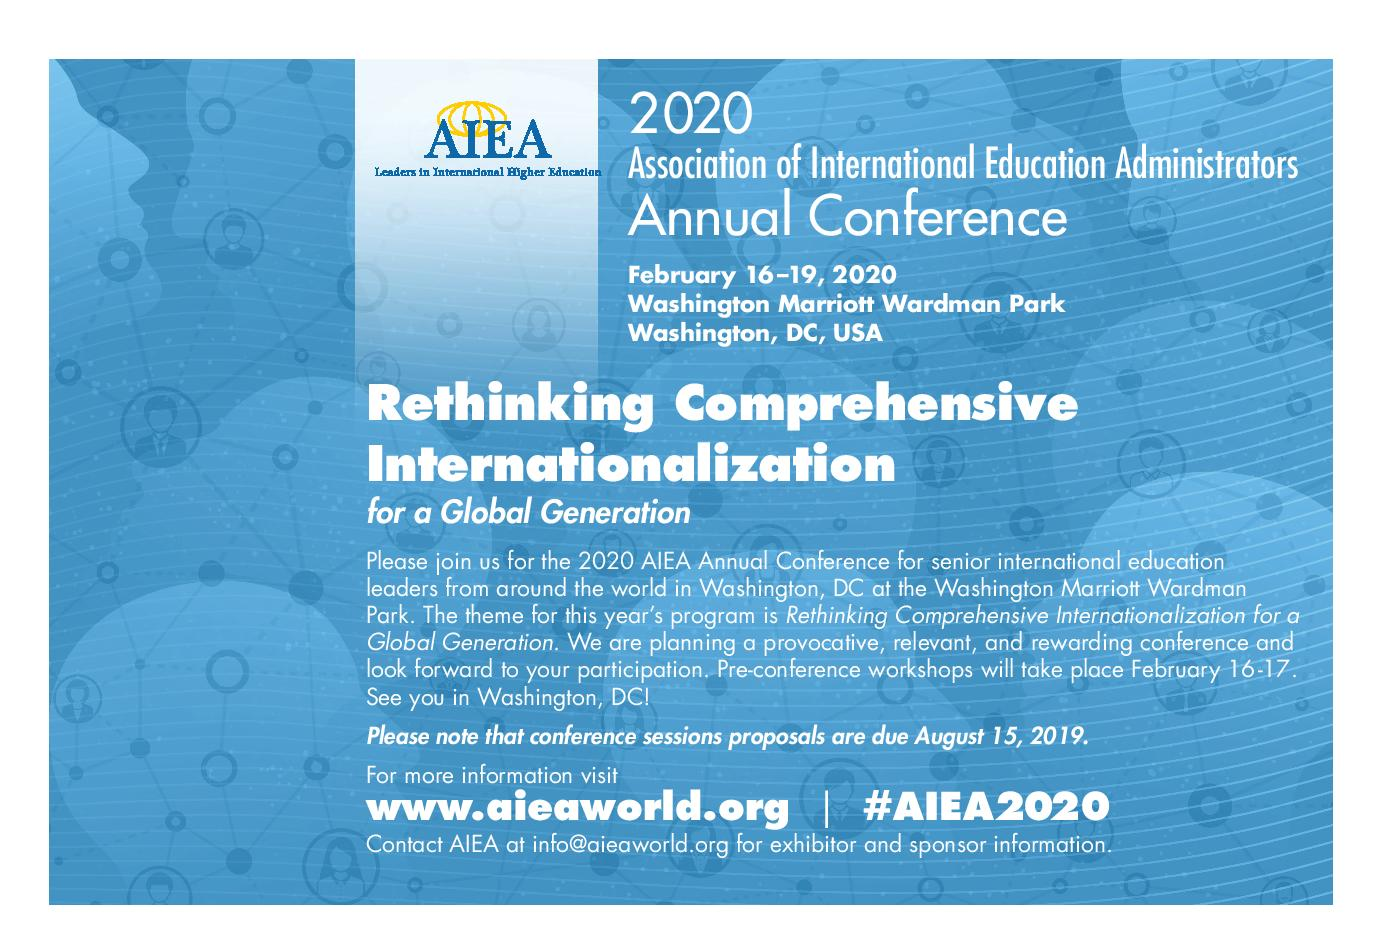 2020 conference postcard with logo on blue background with faces and connectors.Text invites participants to conference with theme, hashtag #AIEA2020, and words of invitation